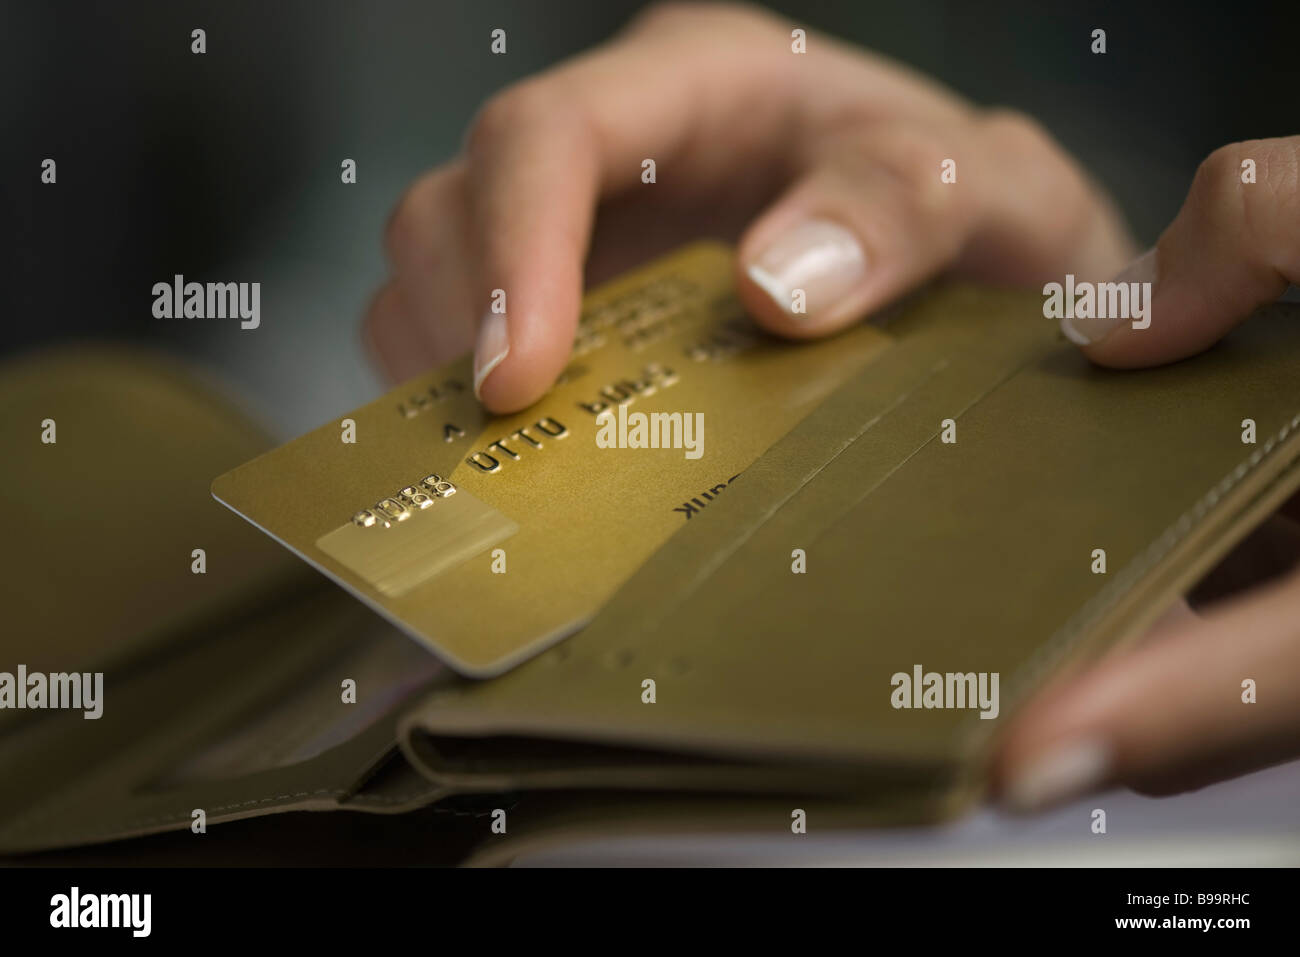 Woman's hand taking credit card out of wallet - Stock Image